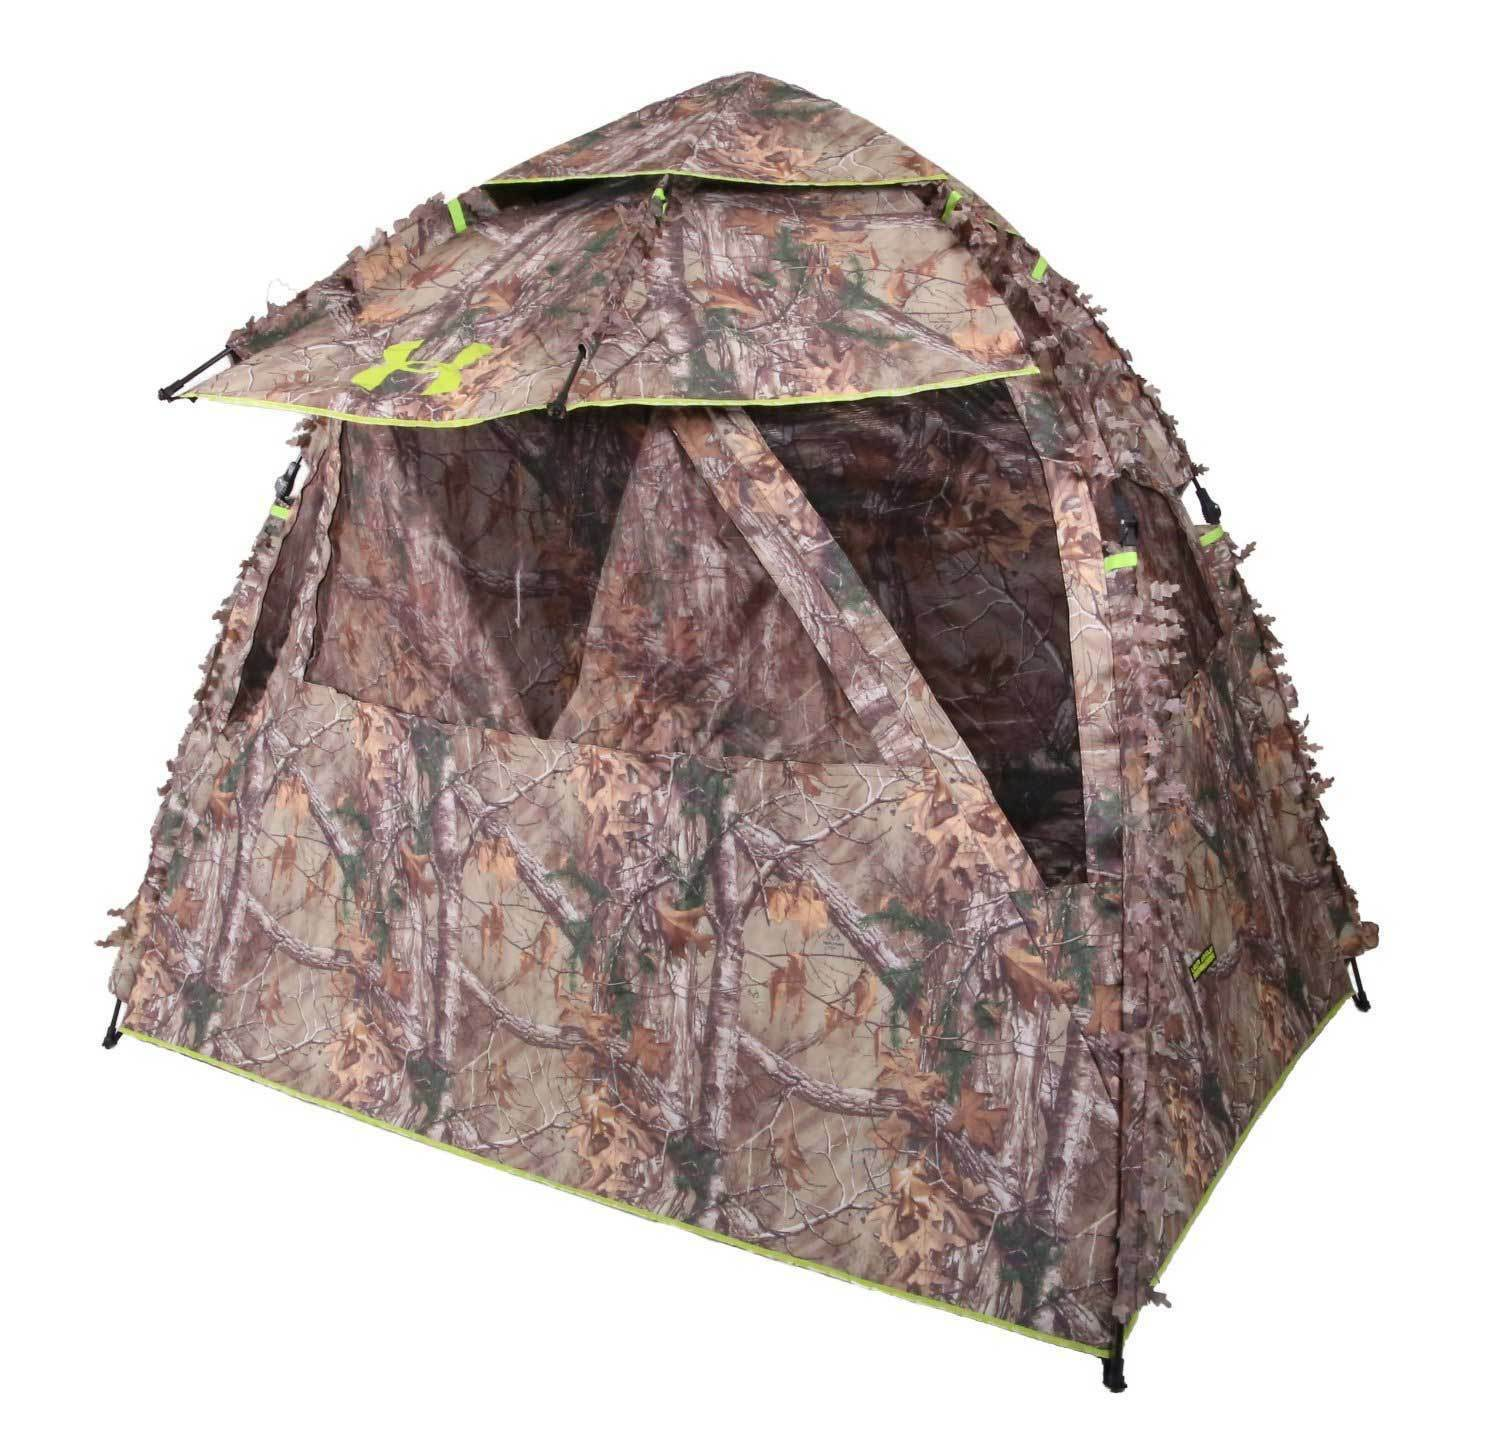 blinds reviews brickhouse best brotherhood realtree xtra top ameristep outdoors ground hunting blind all